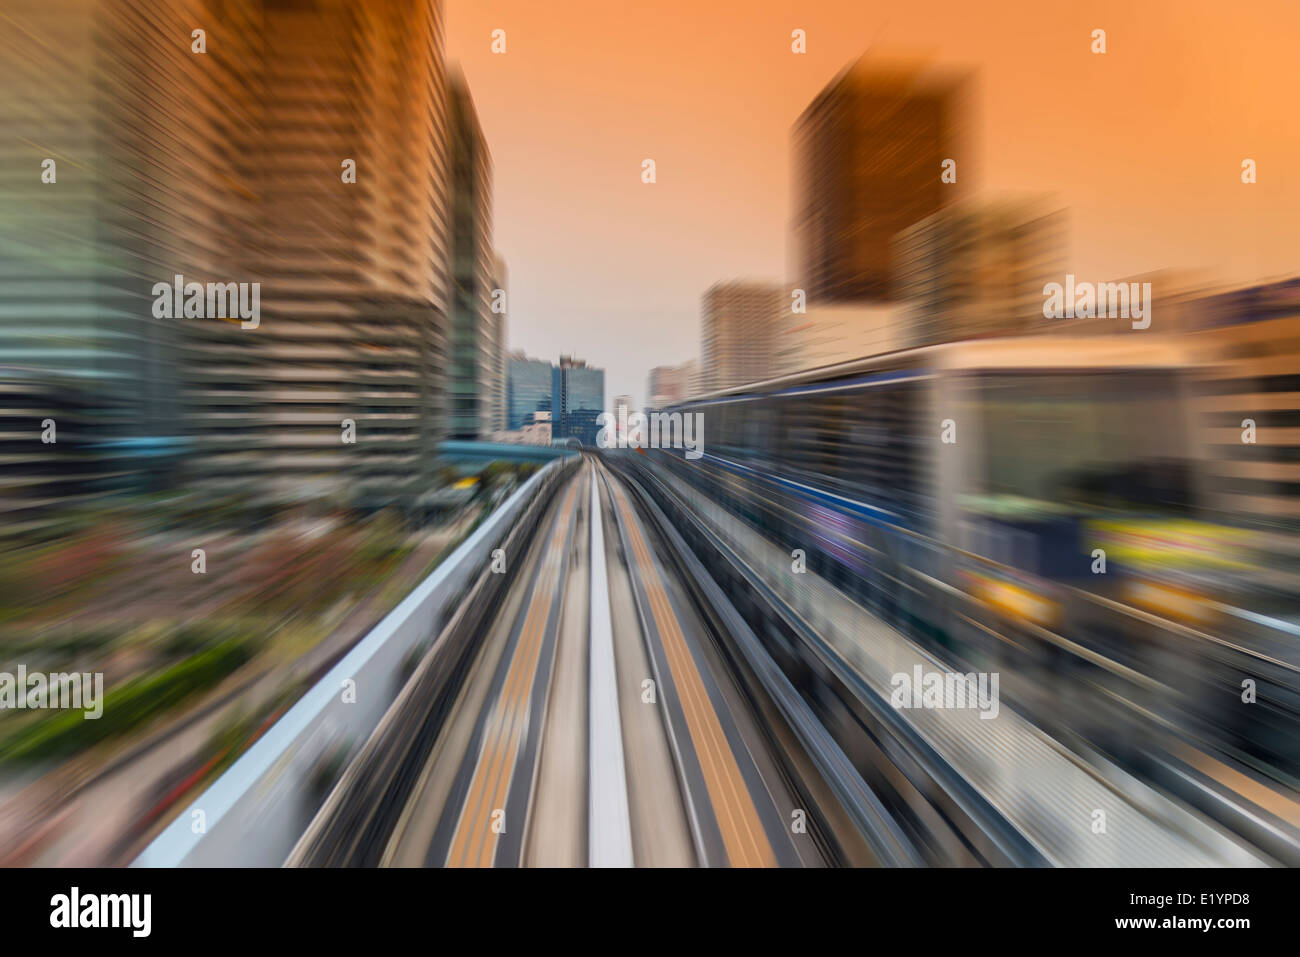 Blurred view of Yurikamome automated guideway transit train, Tokyo, Japan - Stock Image